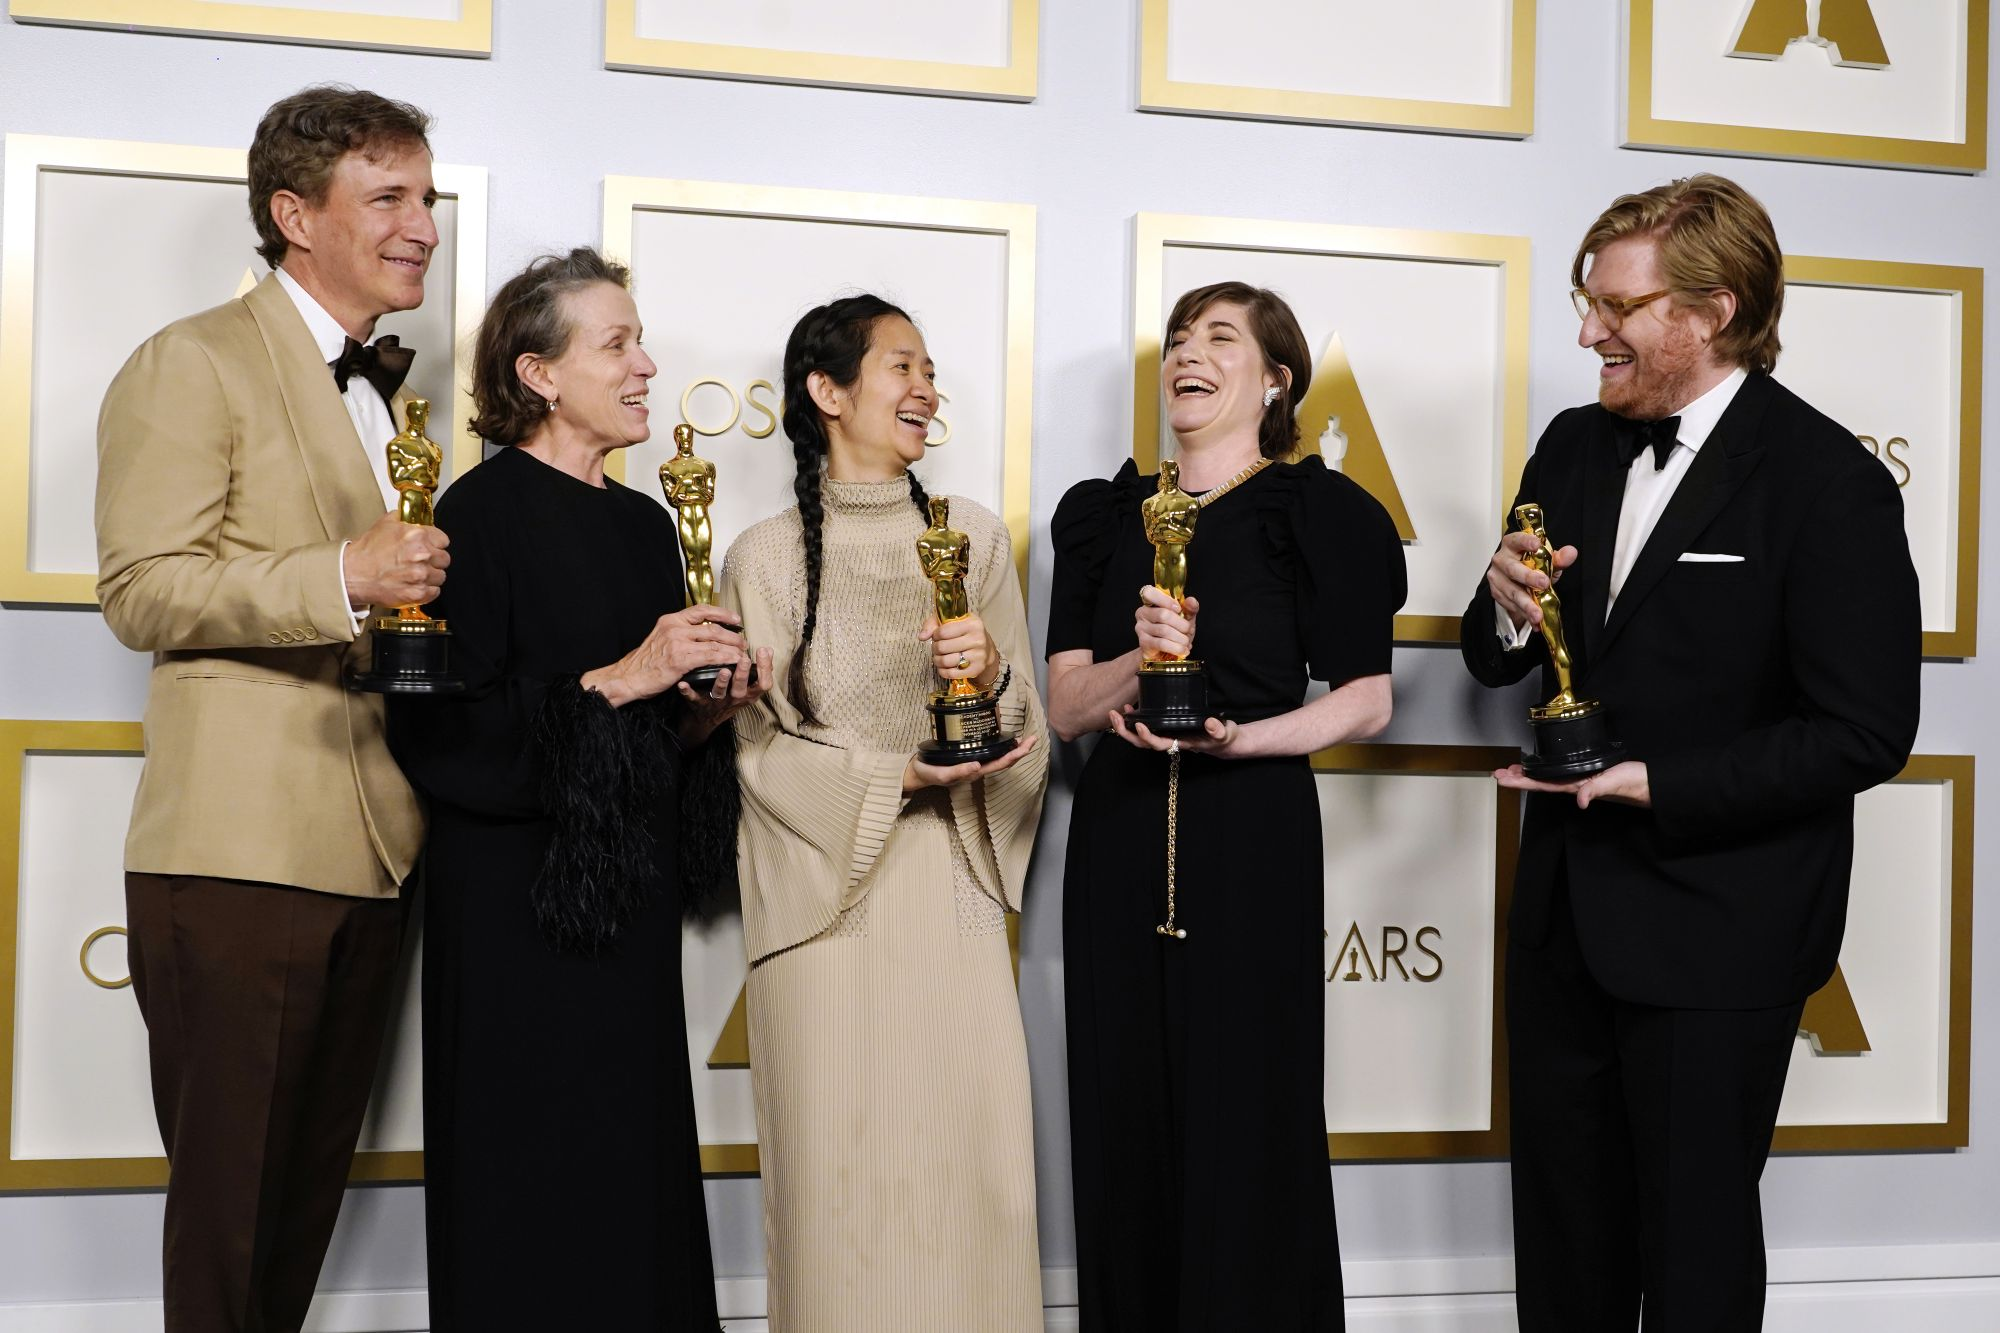 """LOS ANGELES, CALIFORNIA - APRIL 25: (L-R) Peter Spears, Frances McDormand, Chloe Zhao, Mollye Asher, and Dan Janvey, winners of Best Picture for """"Nomadland,"""" pose in the press room at the Oscars on Sunday, April 25, 2021, at Union Station in Los Angeles. (Photo by Chris Pizzello-Pool/Getty Images)"""